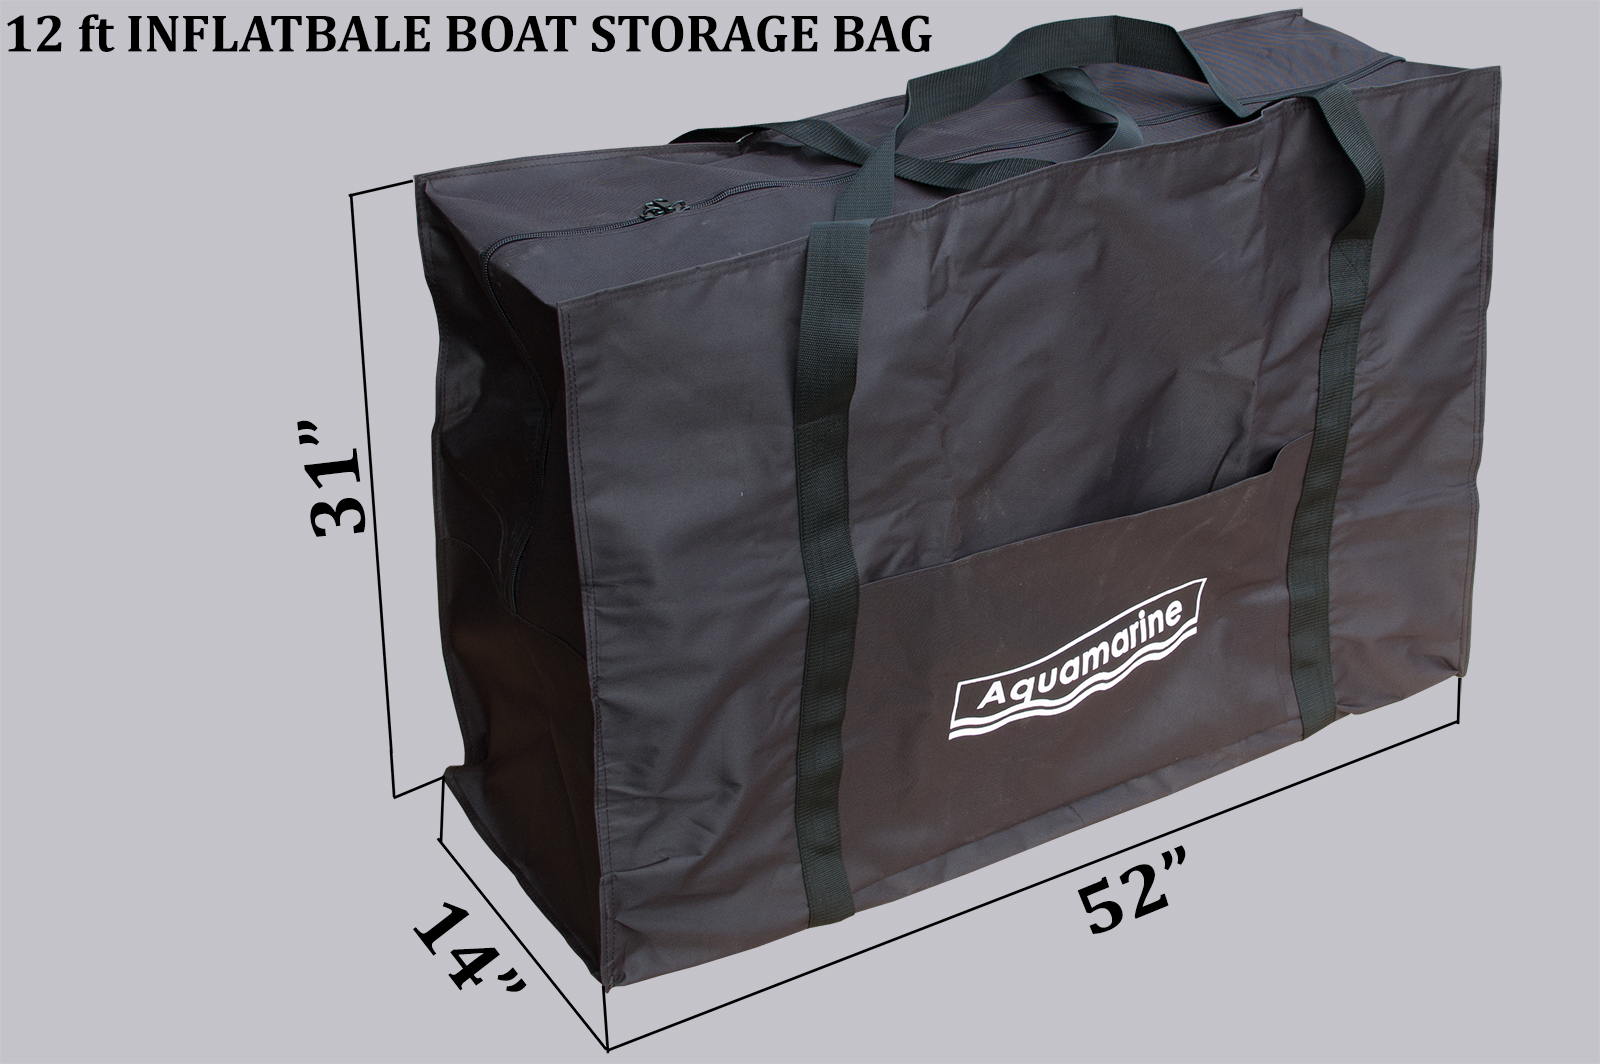 ... Related Products Inflatable boat storage bag -Storage bag for 12 ft inflatable boat & Storage Bag for inflatable boat dinghy